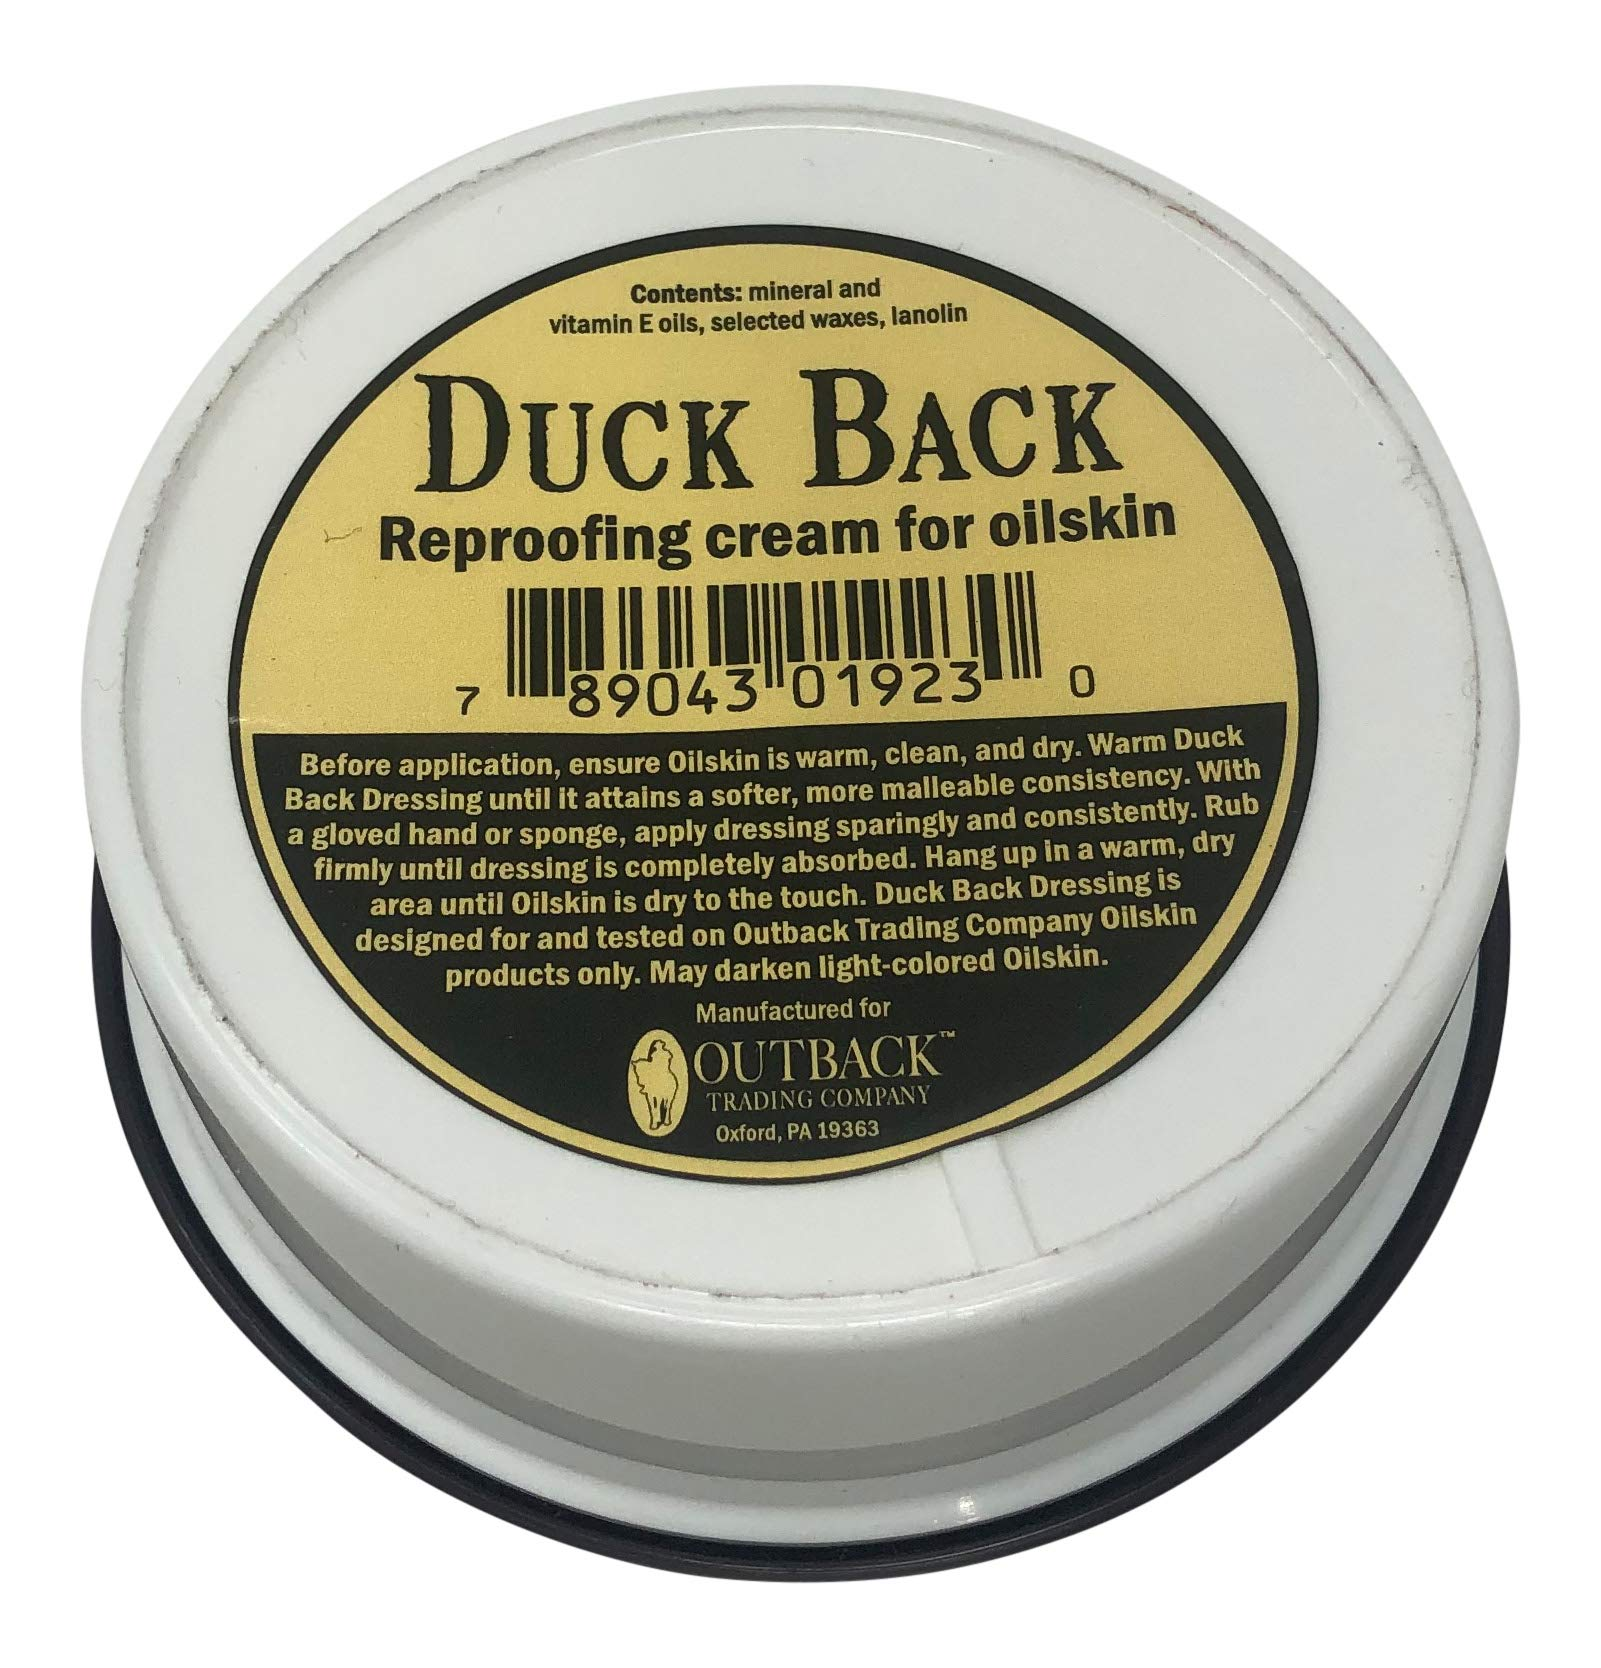 Outback Trading Company Duck Back Oilskin Reproofing Cream 6 OZ 2-count